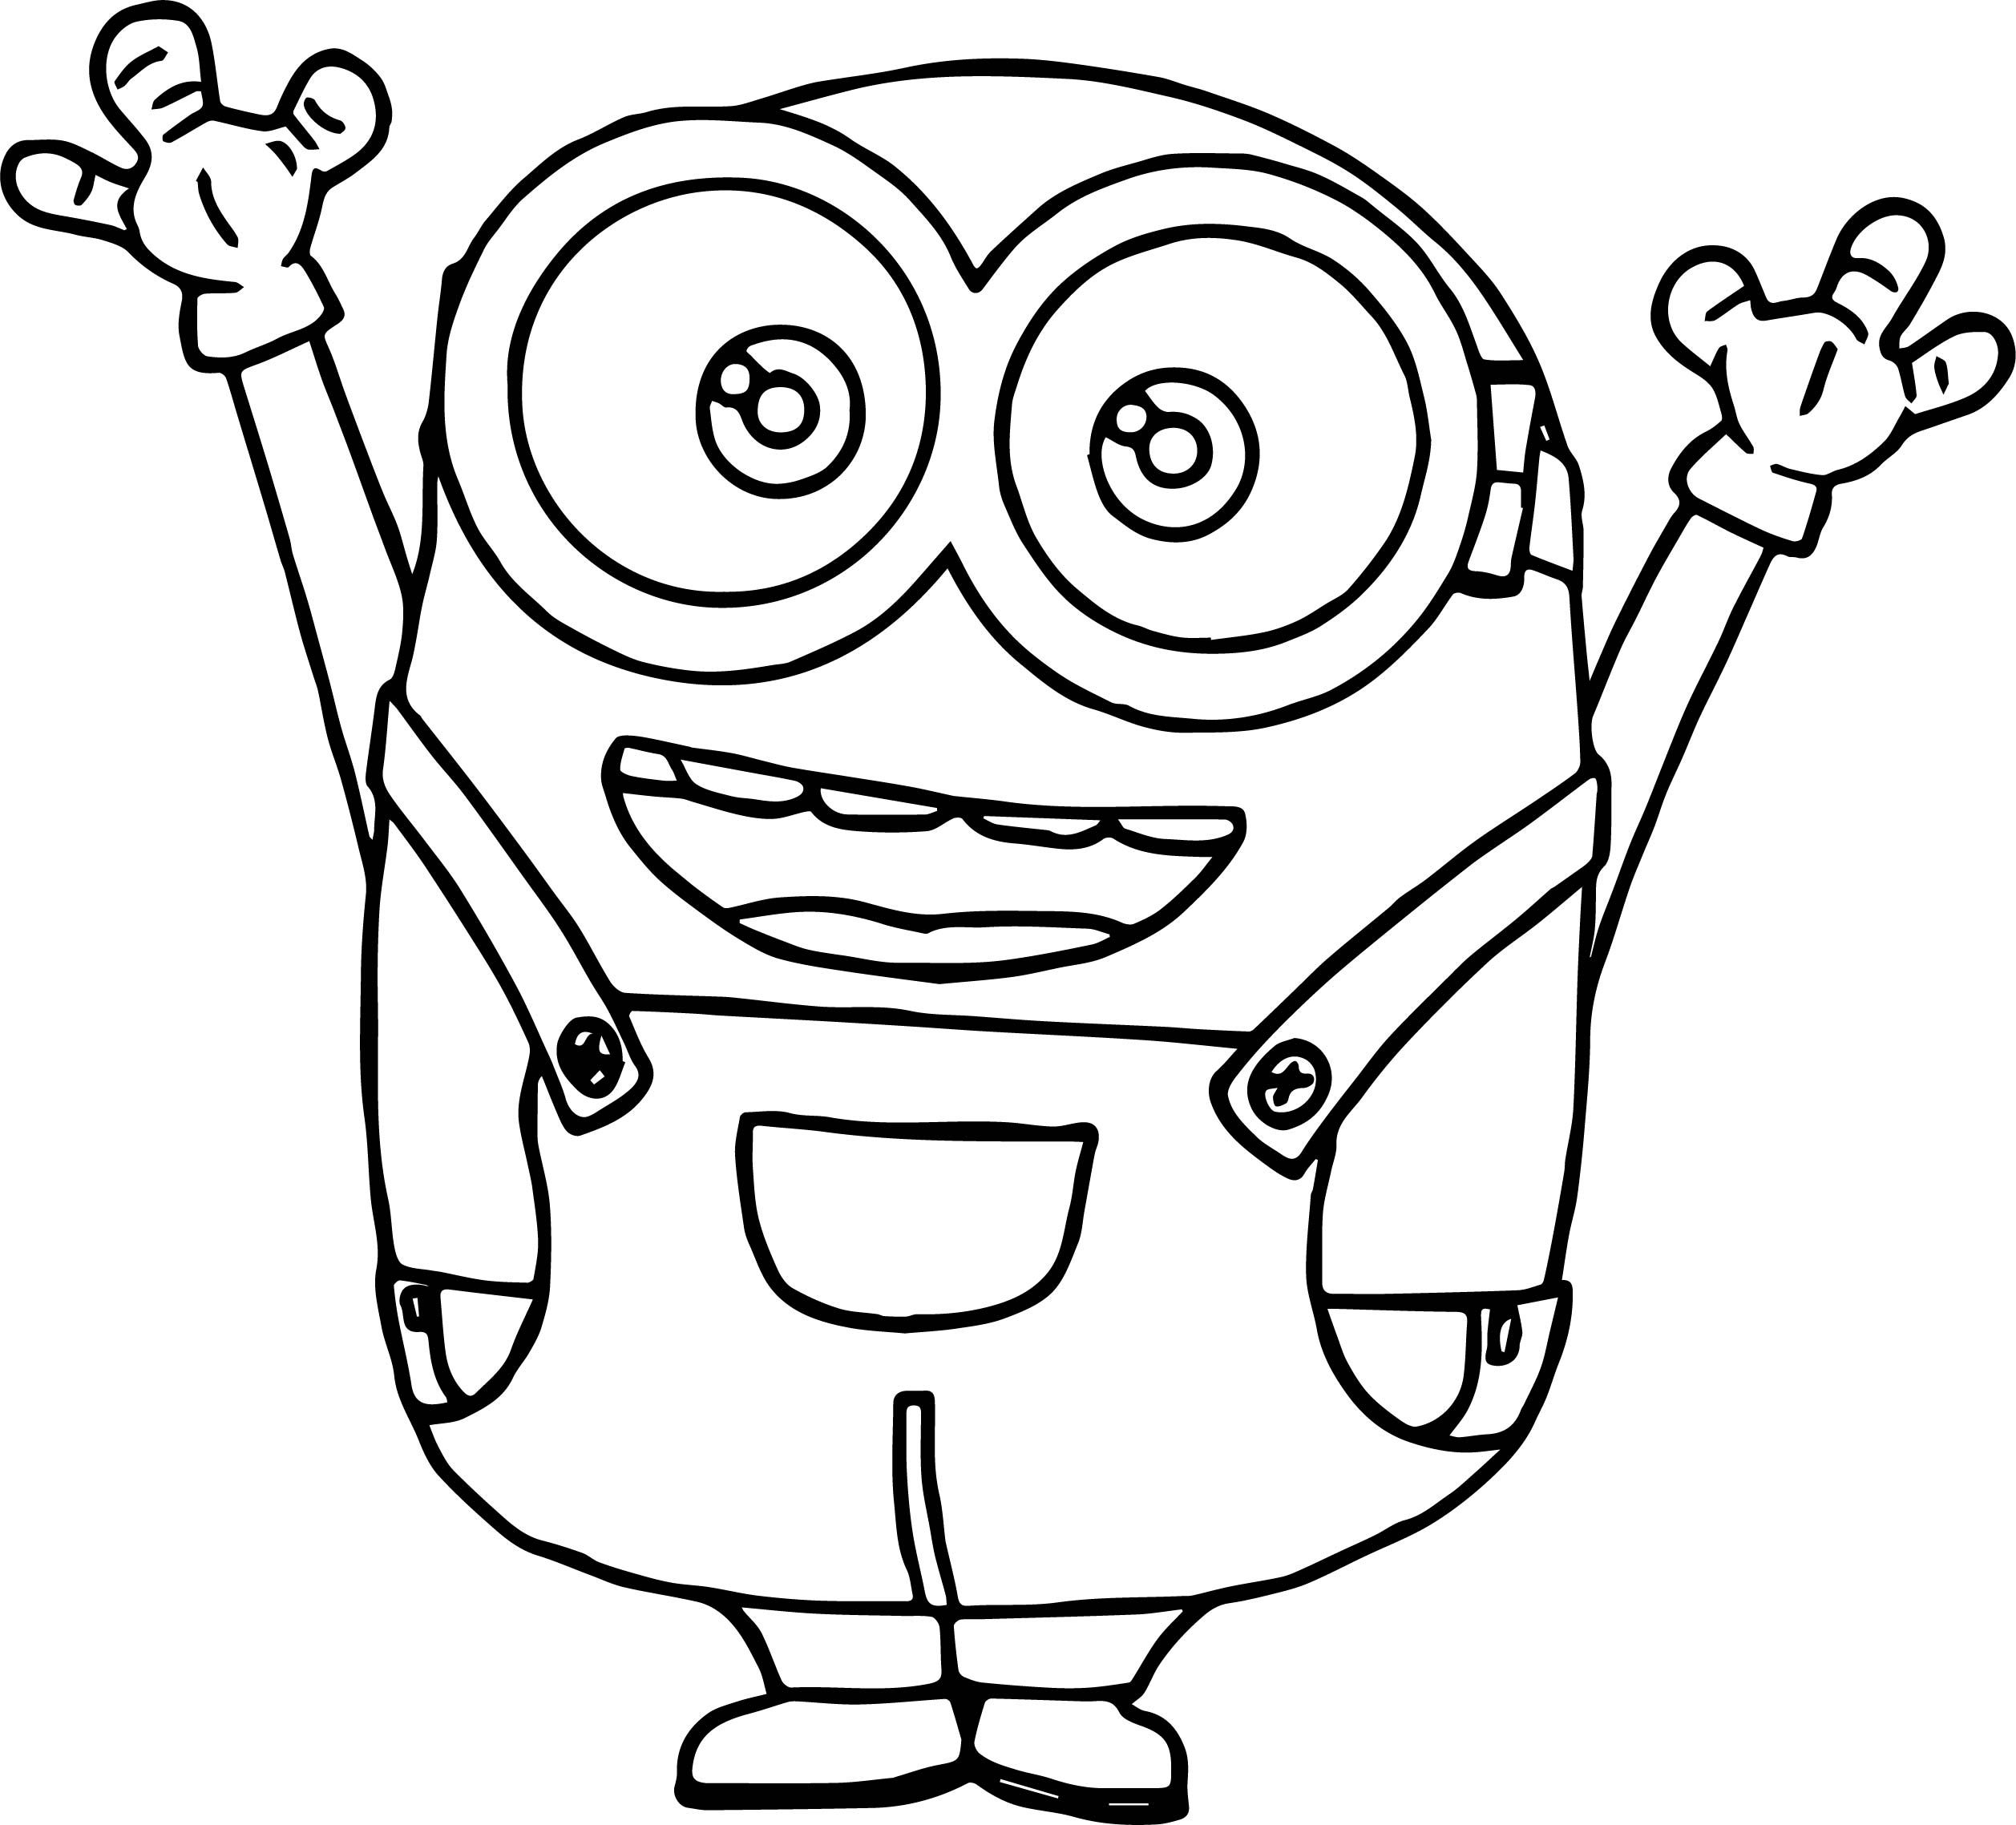 Nice Bob The Minion Tutorial Coloring Page Minion Coloring Pages Minions Coloring Pages Coloring Pages